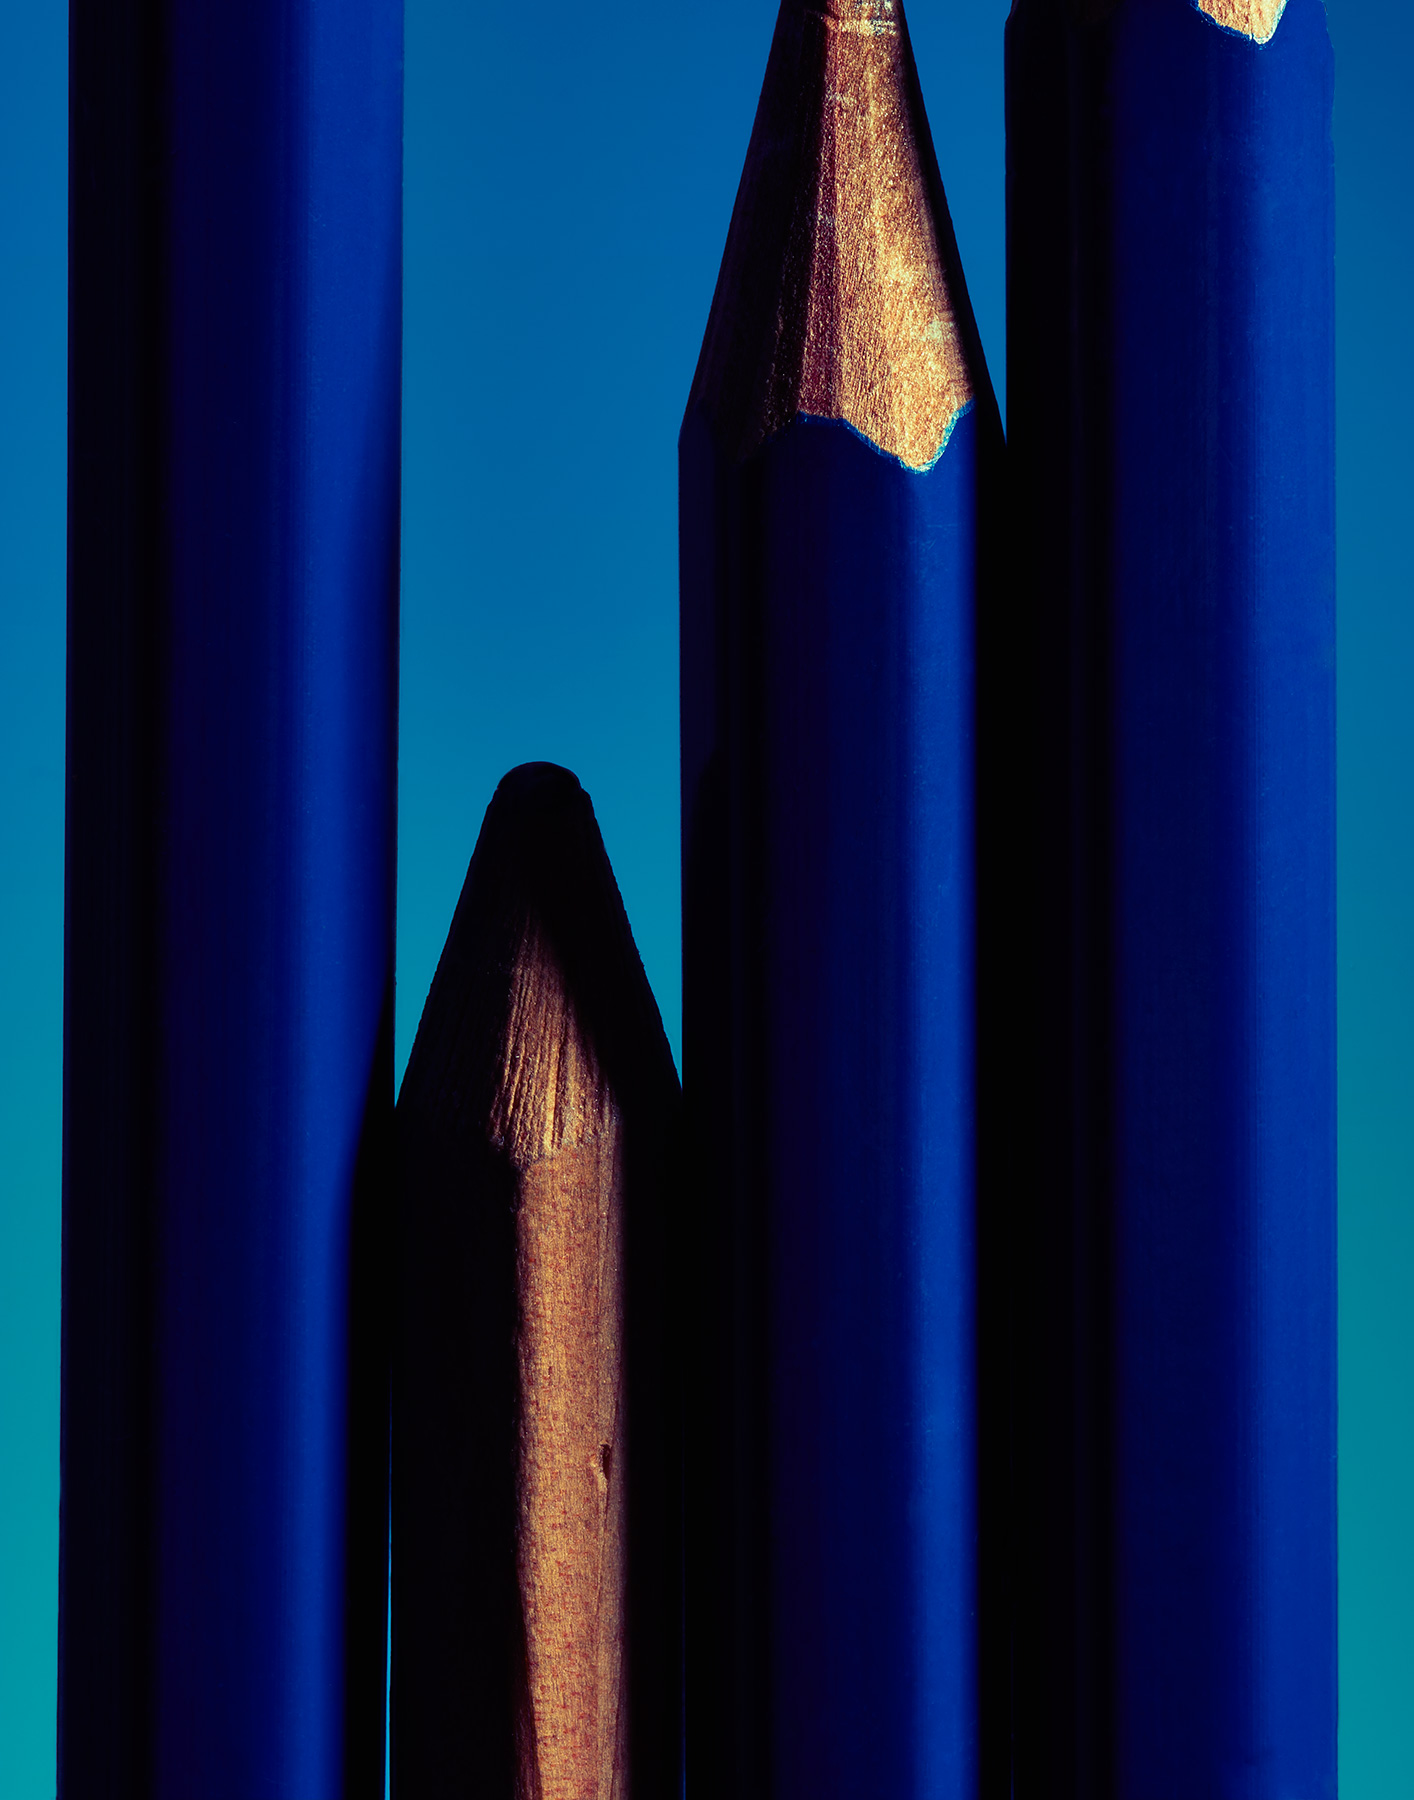 Blue Pencils on Blue background  by Ted Cavanaugh